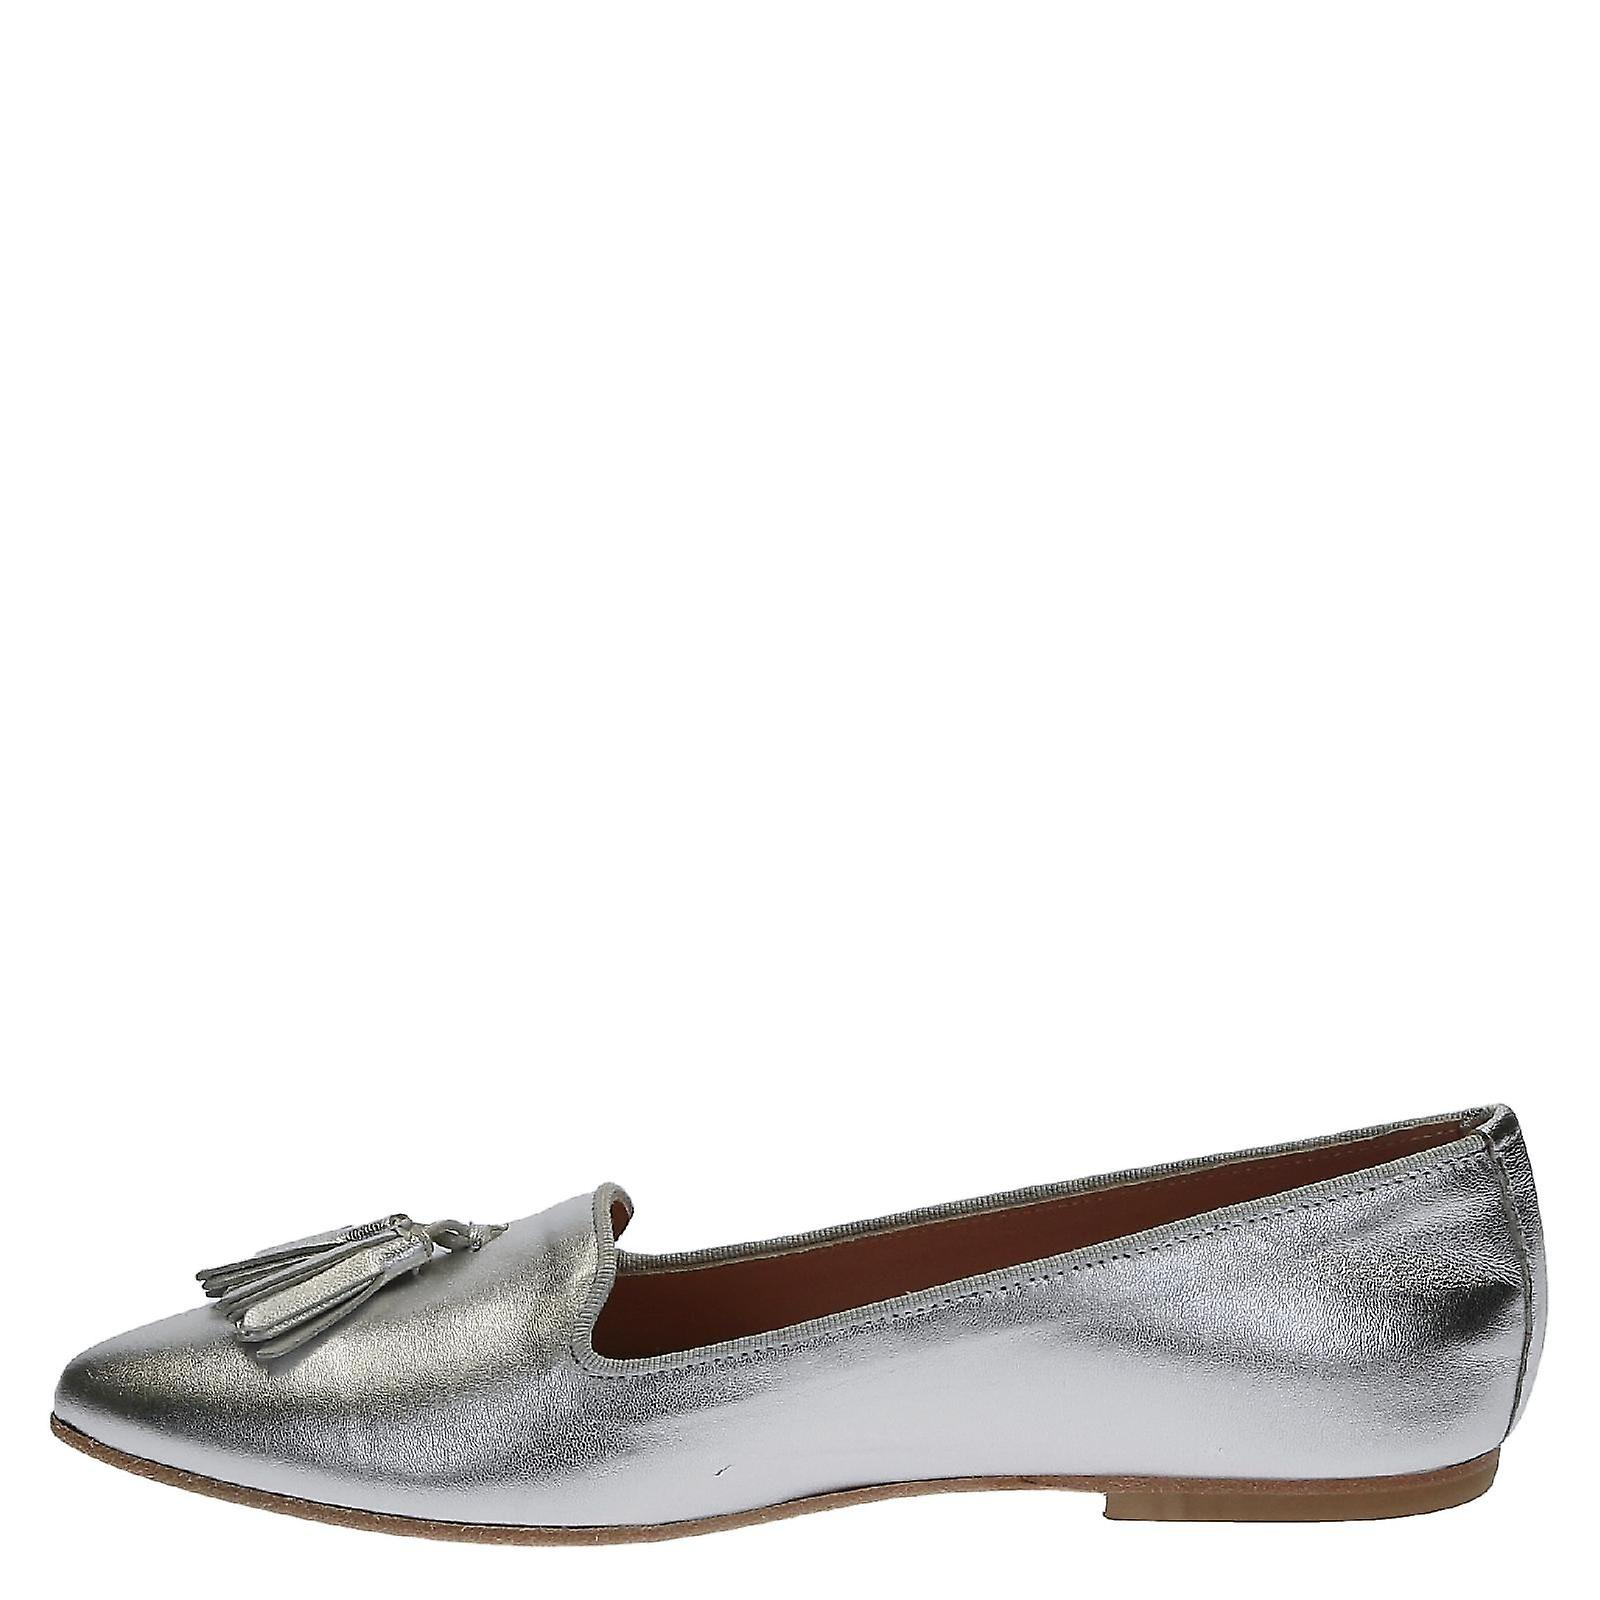 Leonardo Shoes 11720cuoionappaargento Women's Silver Leather Flats aUhywN